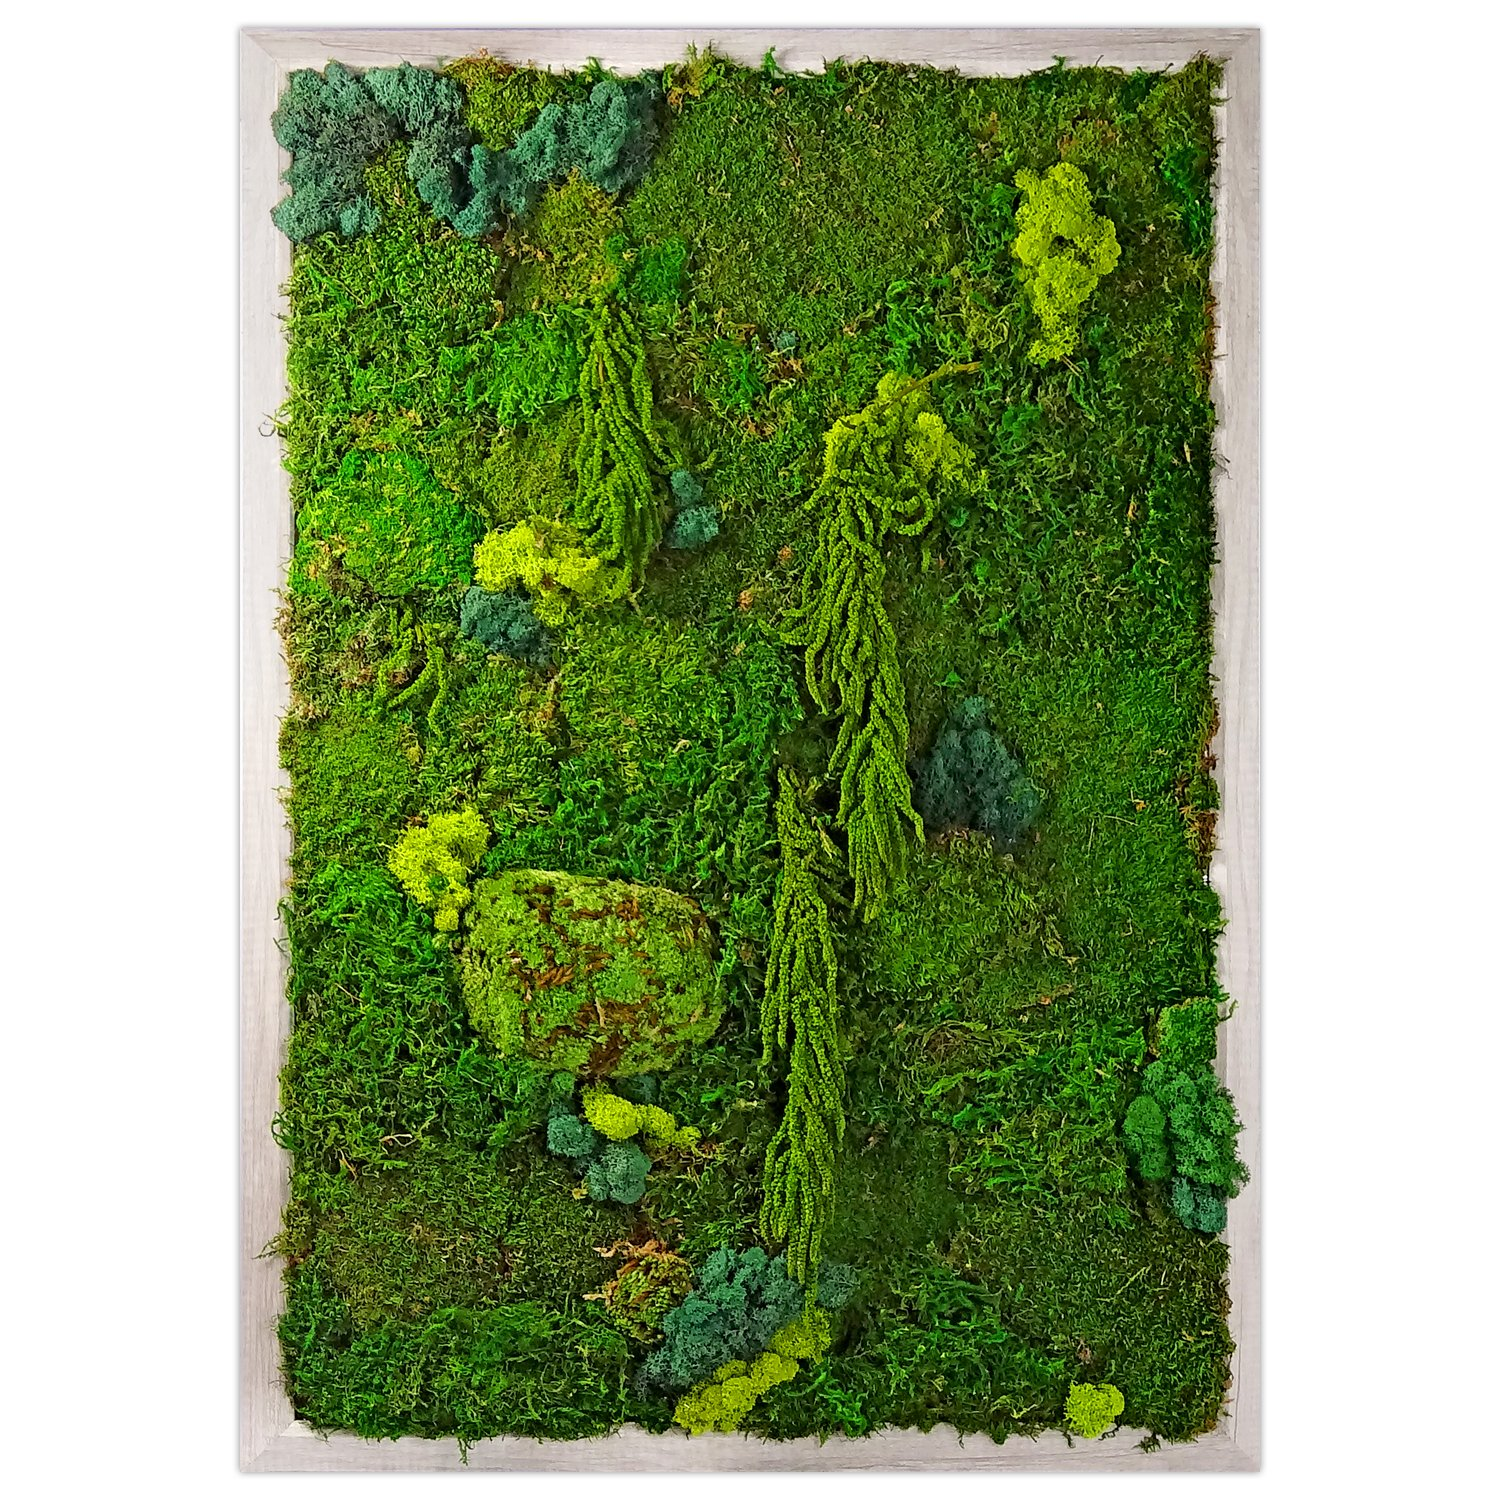 Photo 1 of 1 in Preserved Moss Living Wall Garden